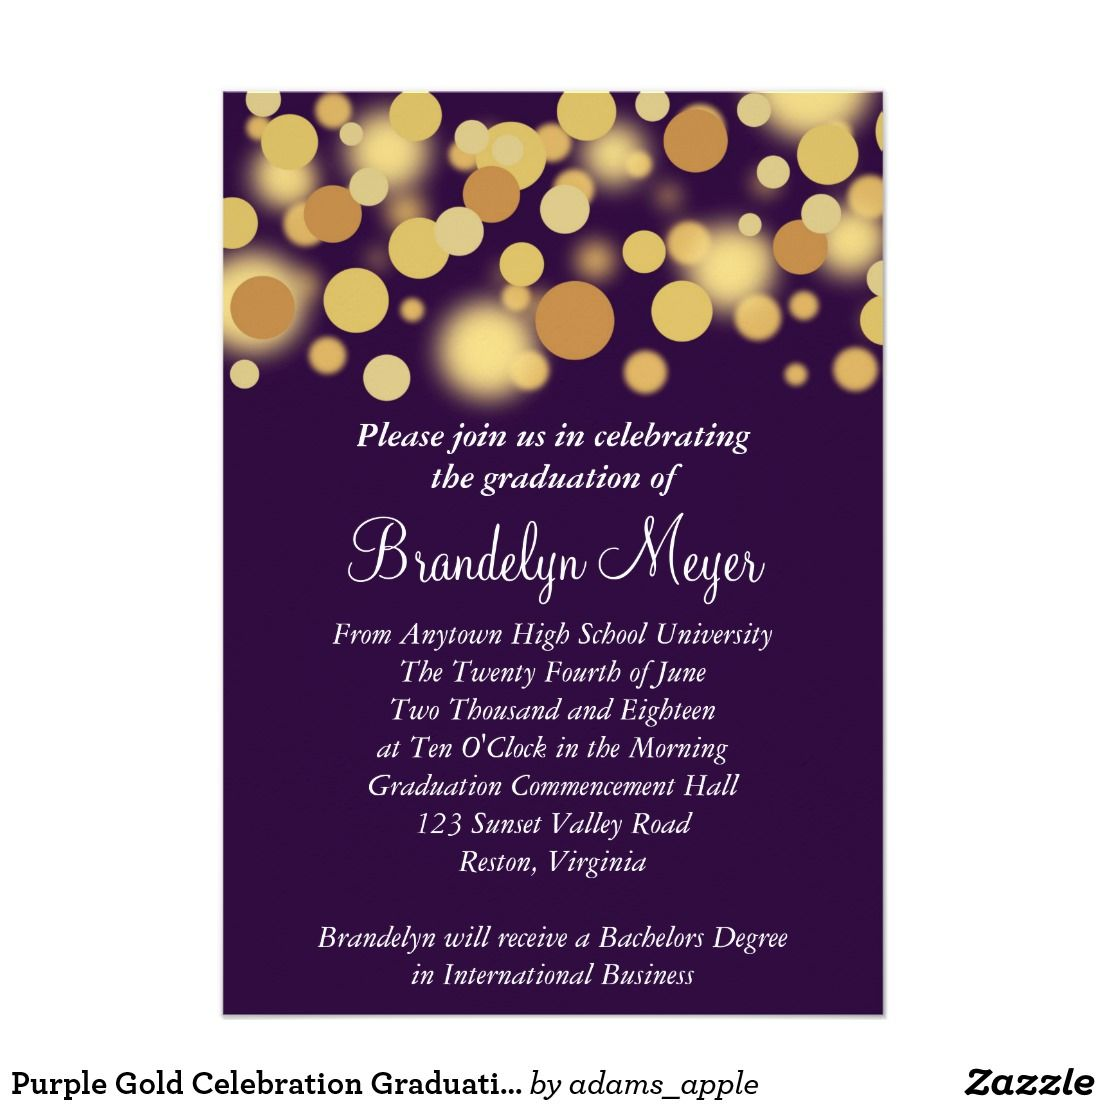 Purple Gold Celebration Graduation Announcement